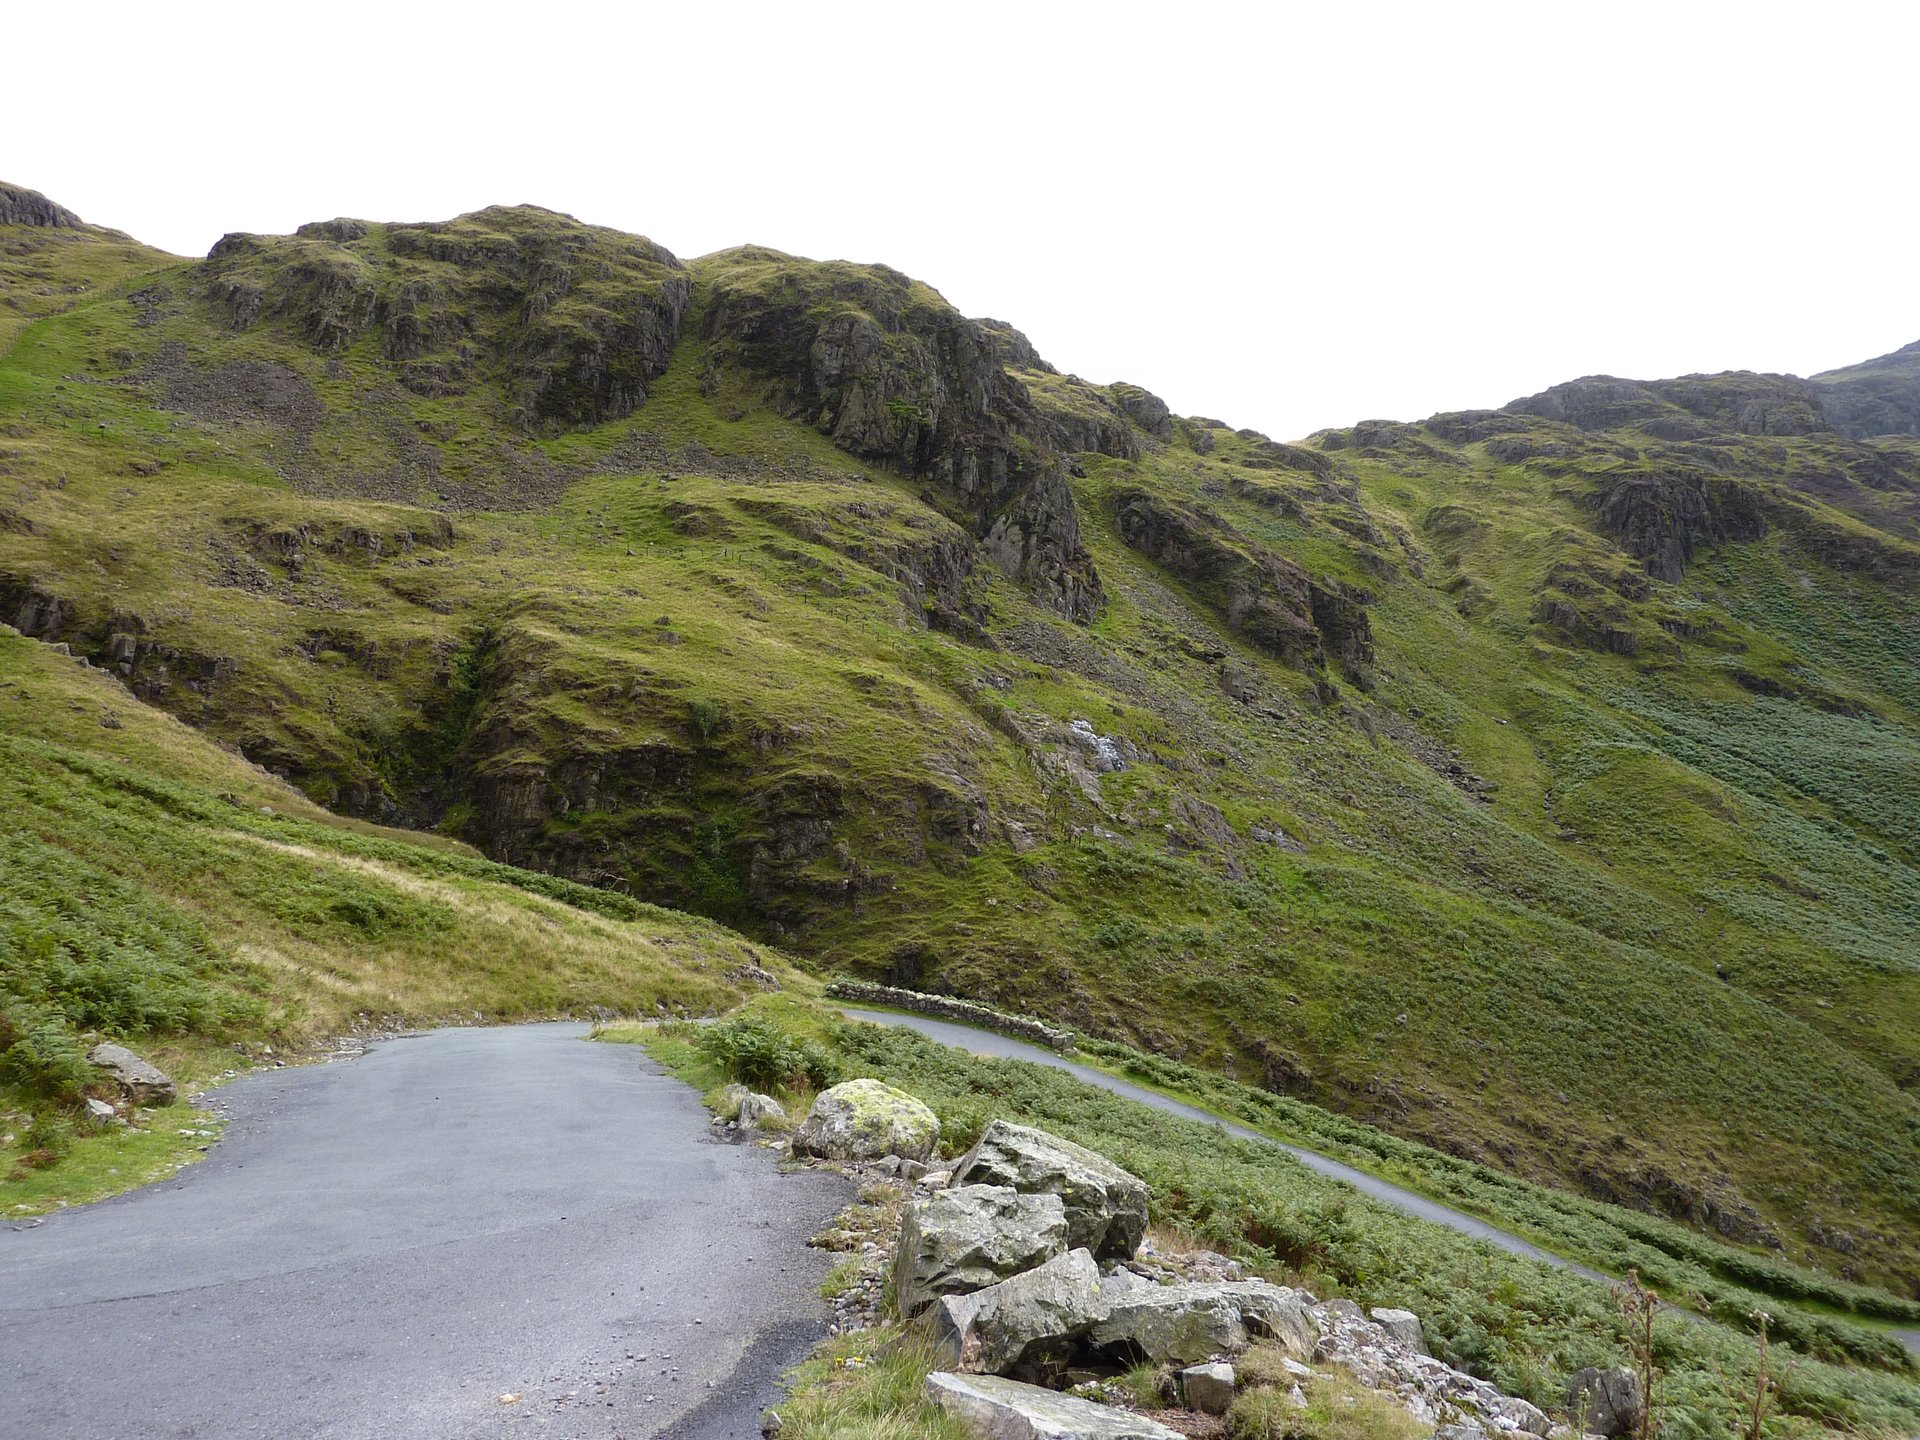 Probably the steepest part of the western side of Hardknott Pass 2020